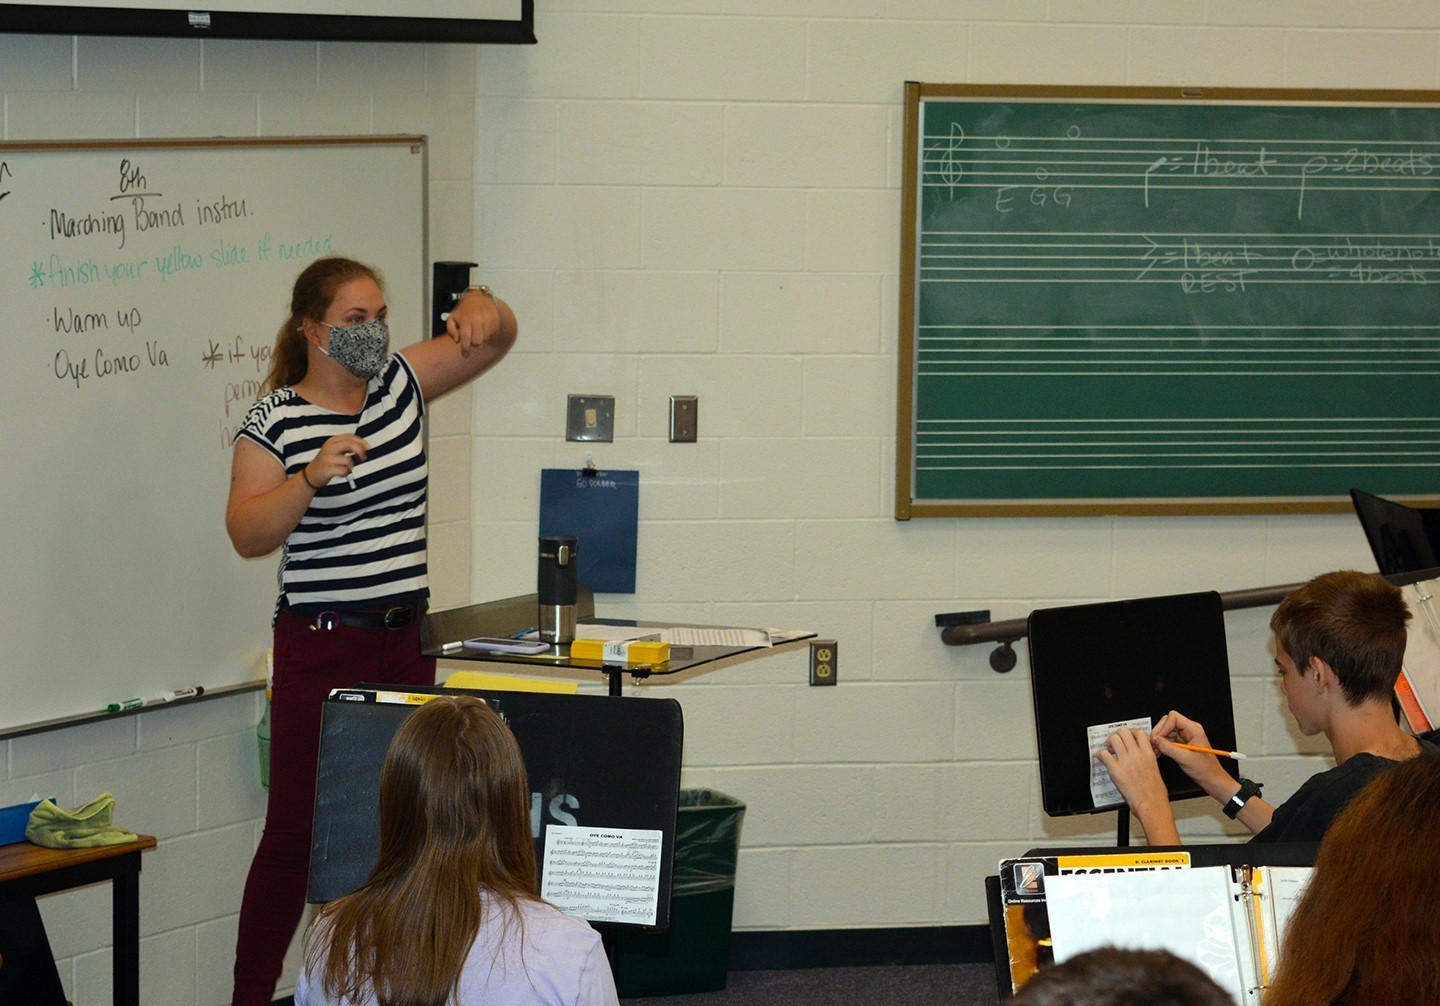 Band teacher instructing students in the classroom.